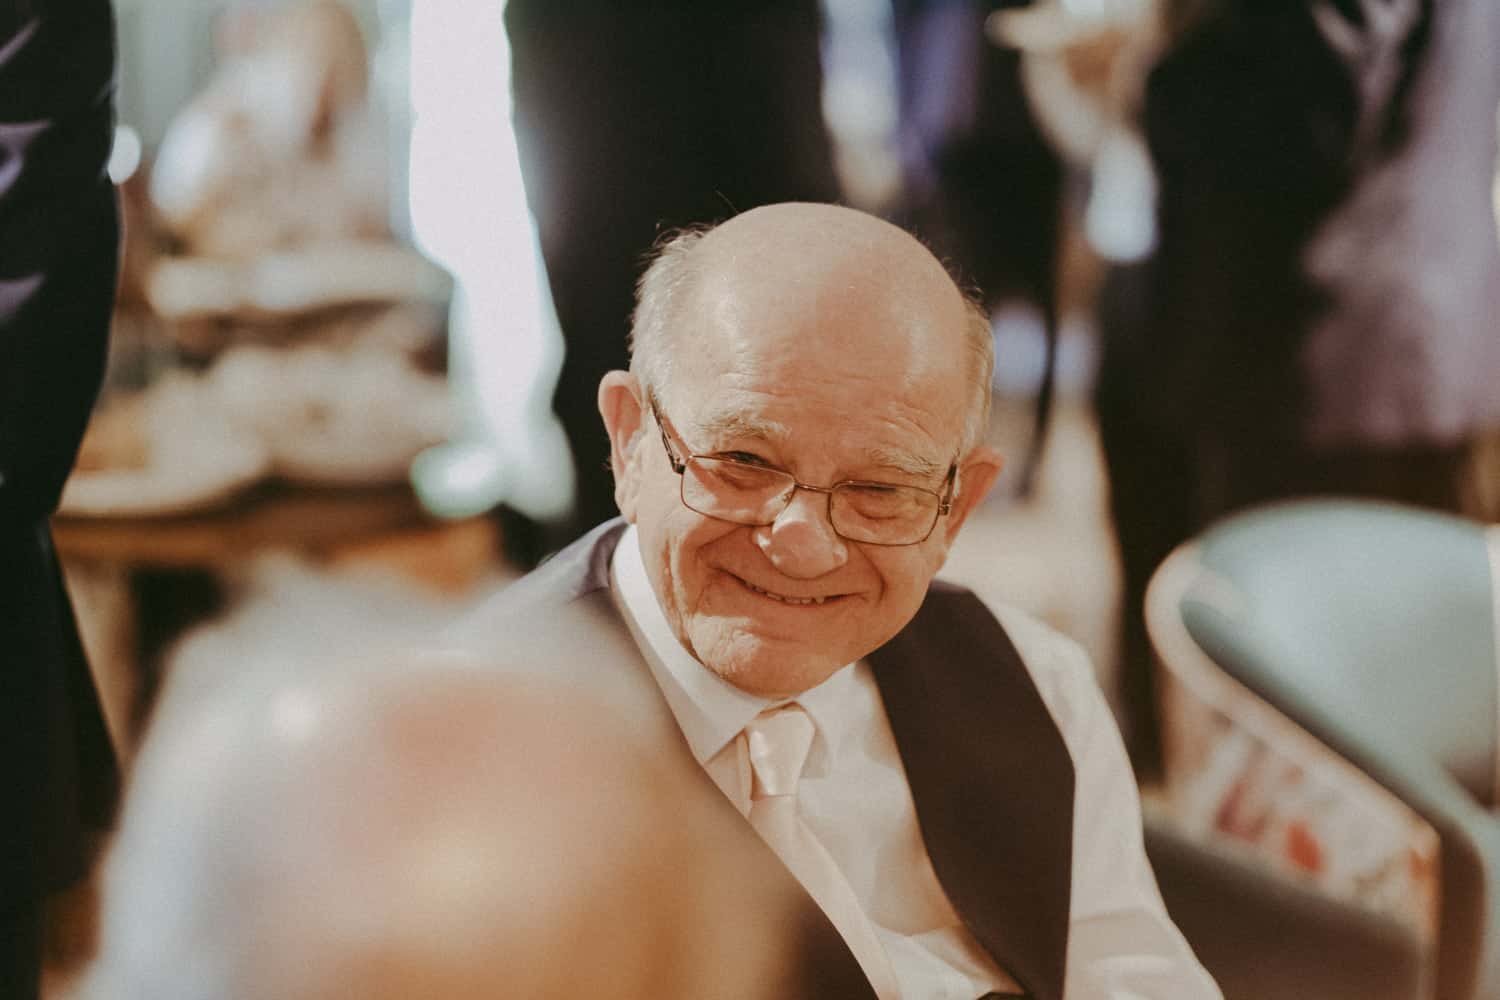 Groom's dad